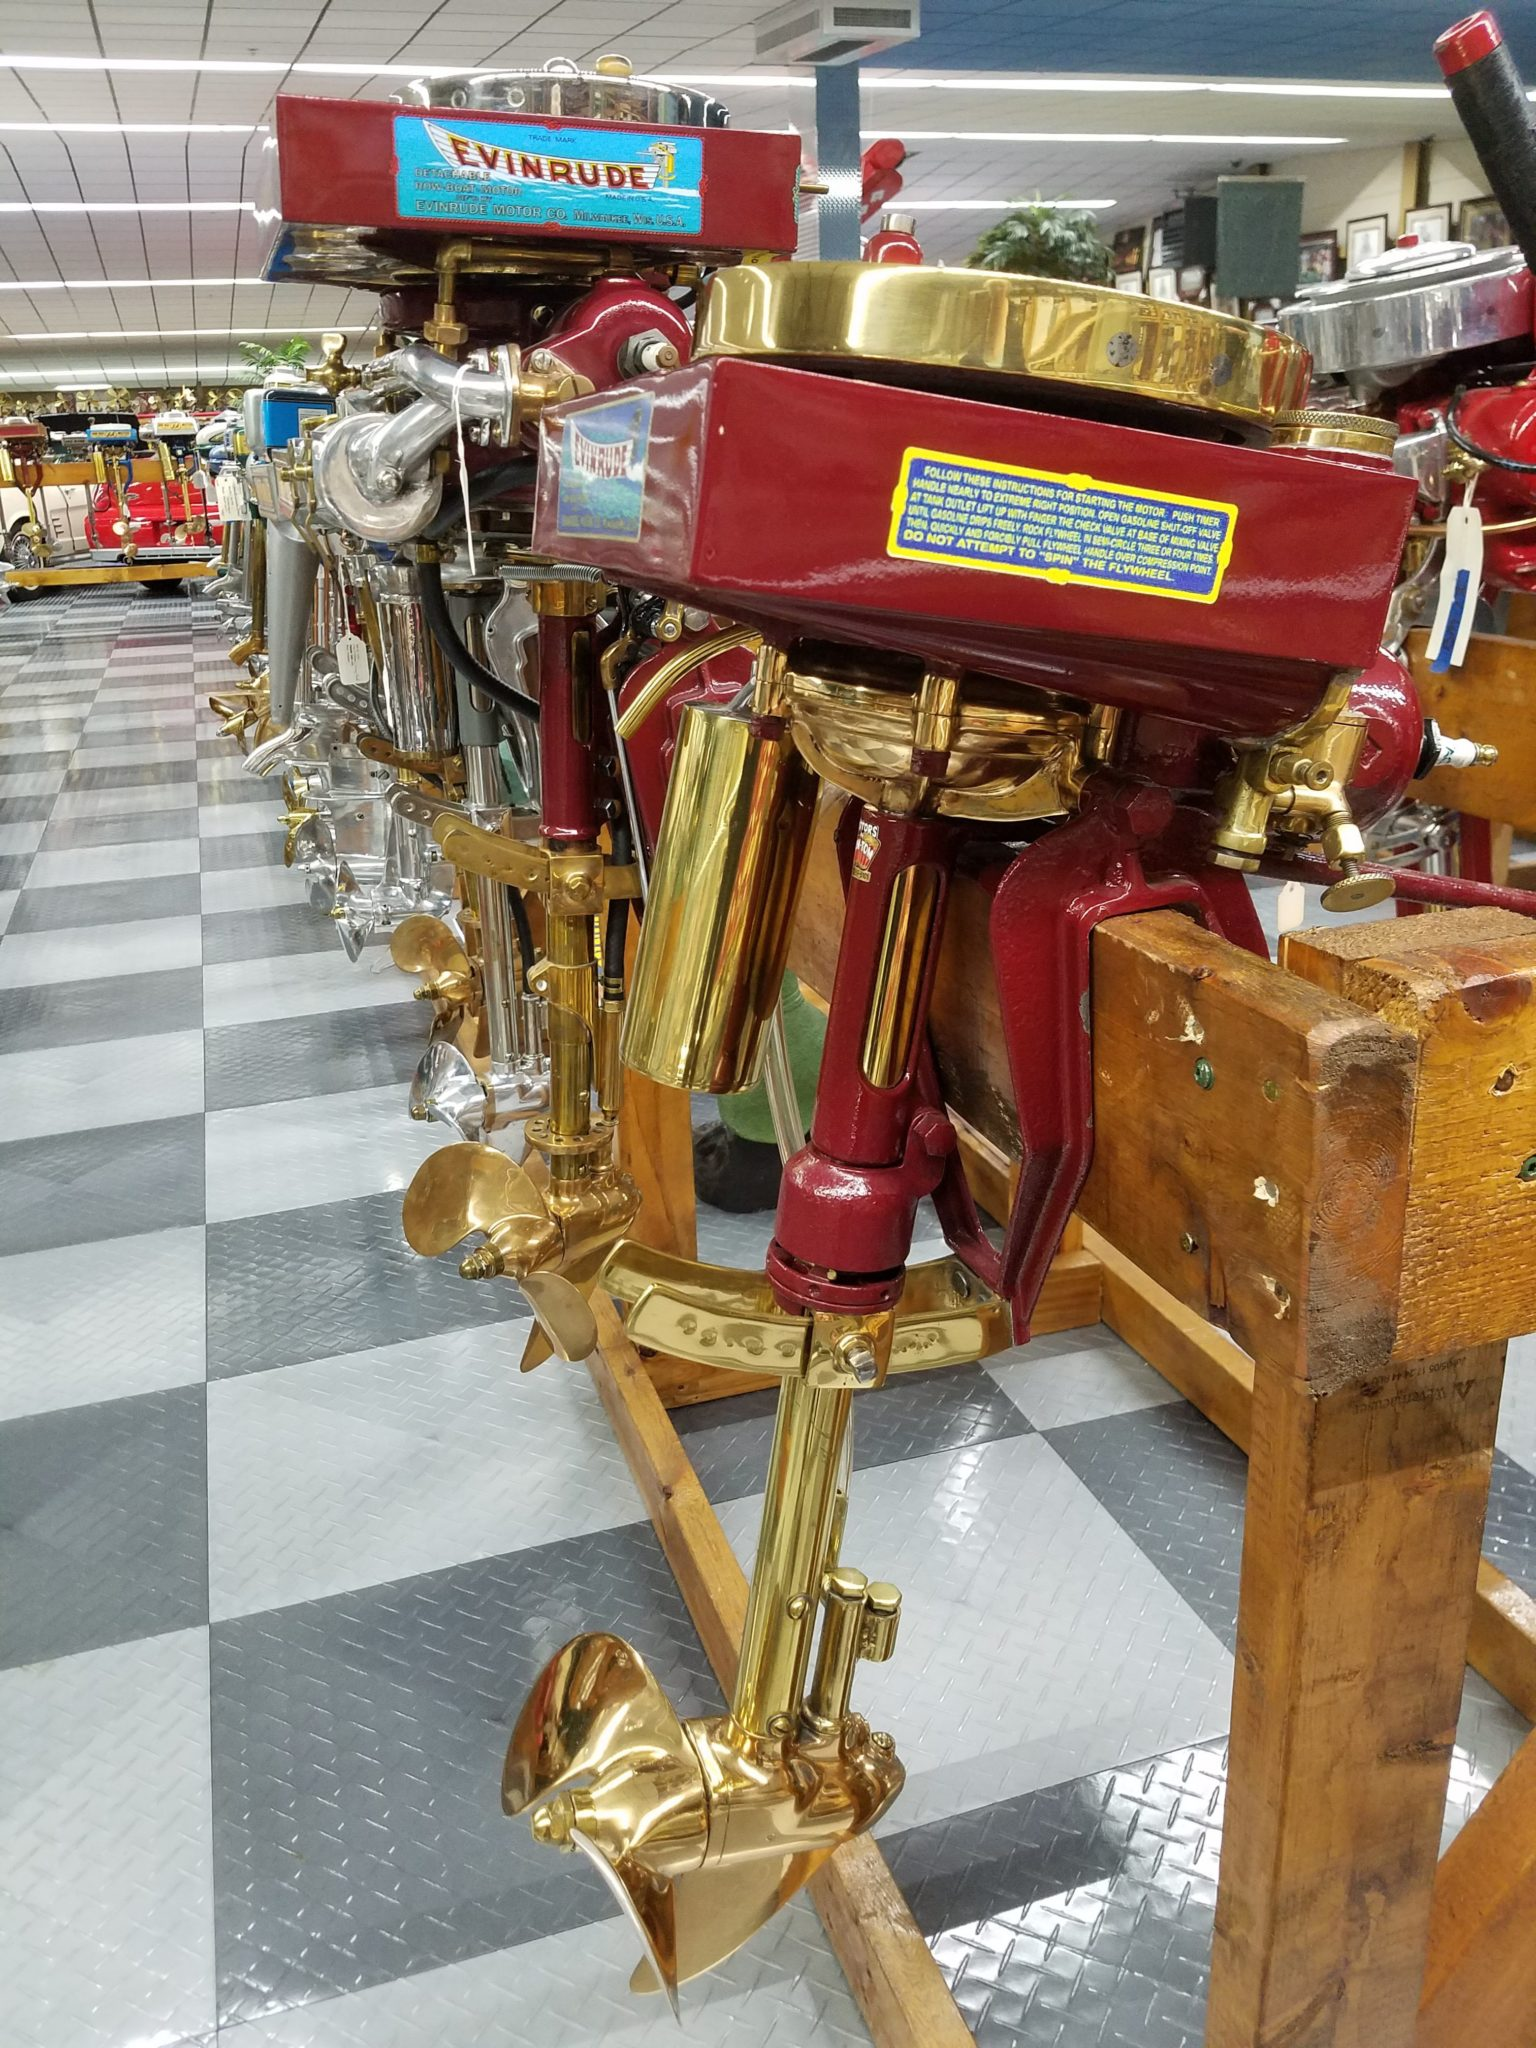 Outboard Motors 05 – Tallahassee Automobile Museum